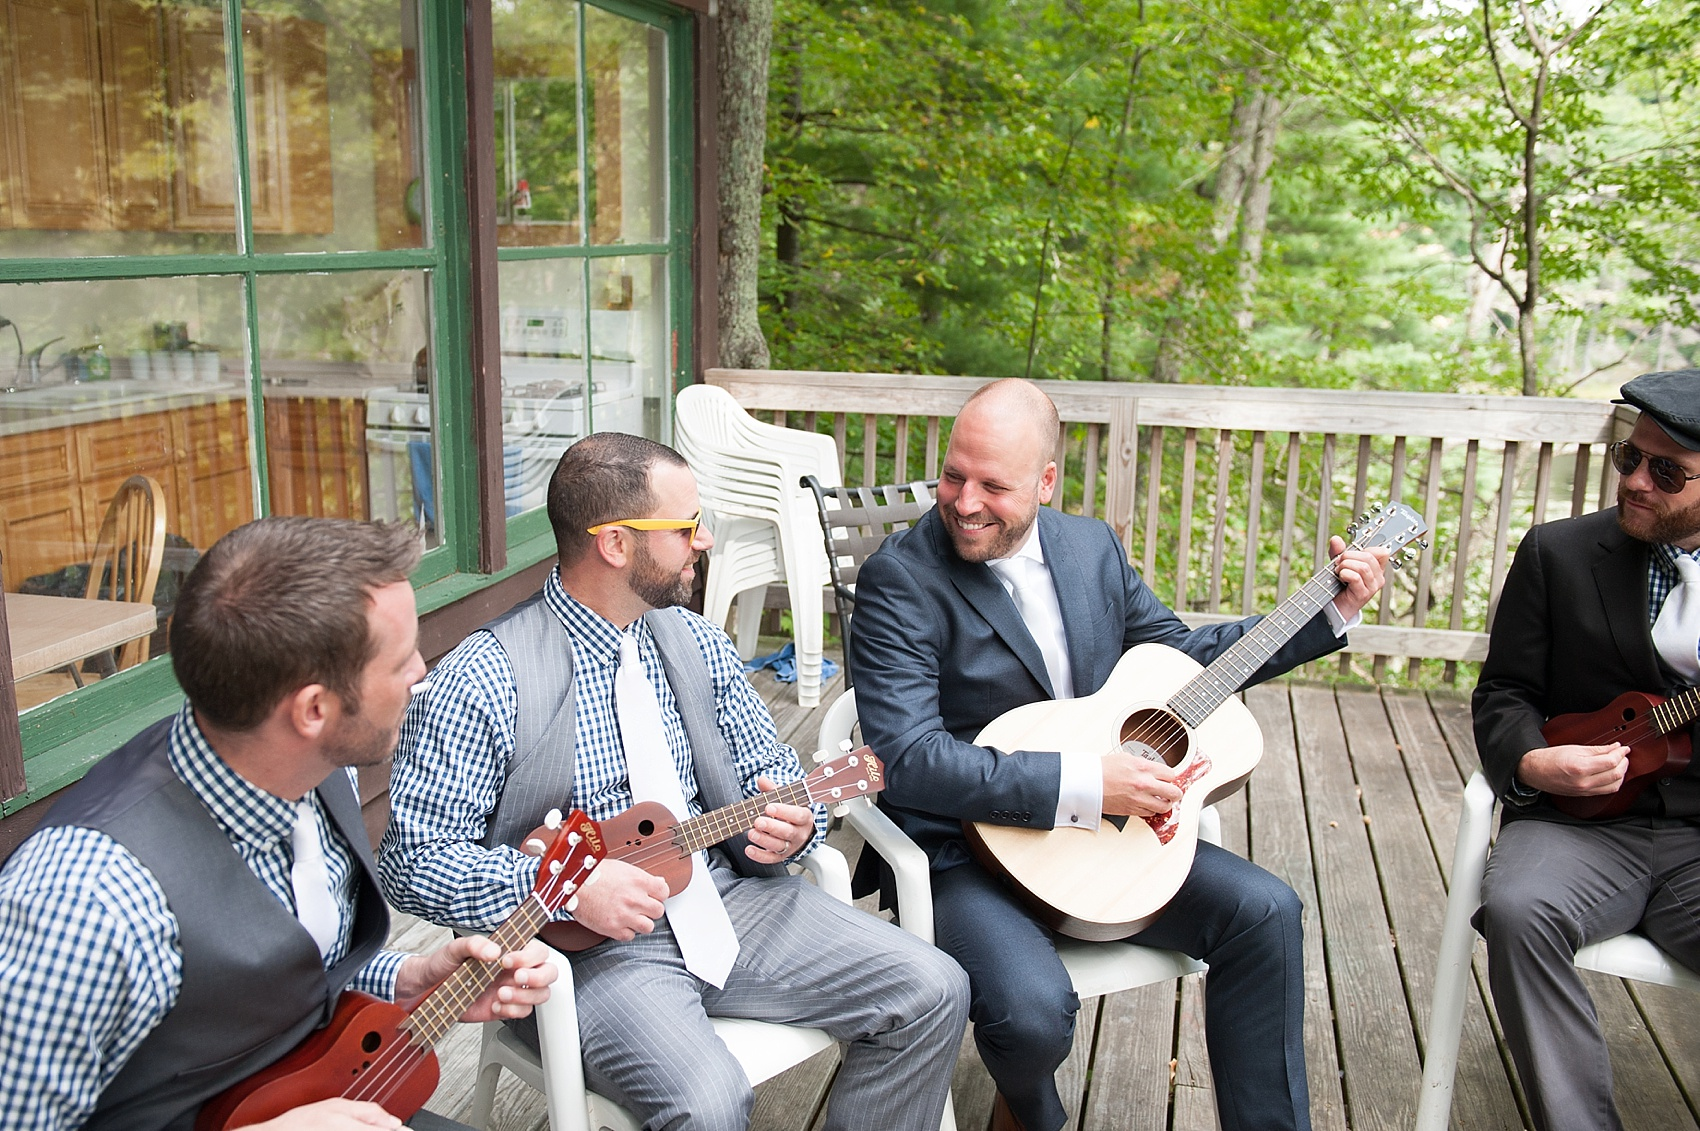 Groom ukelele gifts for a Berkshires wedding at Camp Wa Wa Segowea. Photos by Mikkel Paige Photography, destination wedding photographer.